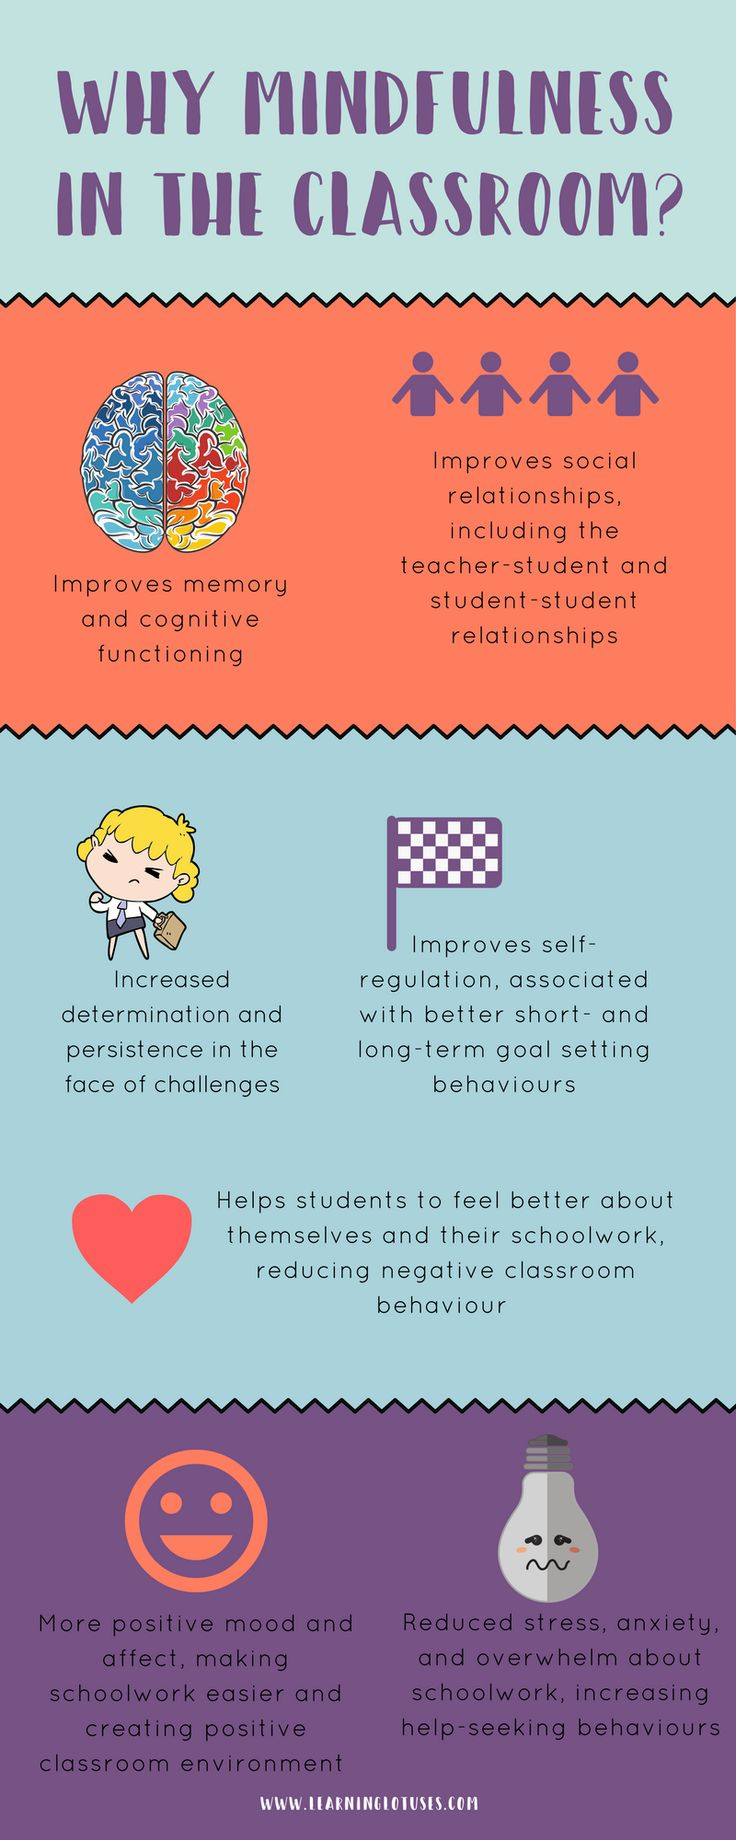 Why Mindfulness for Kids?